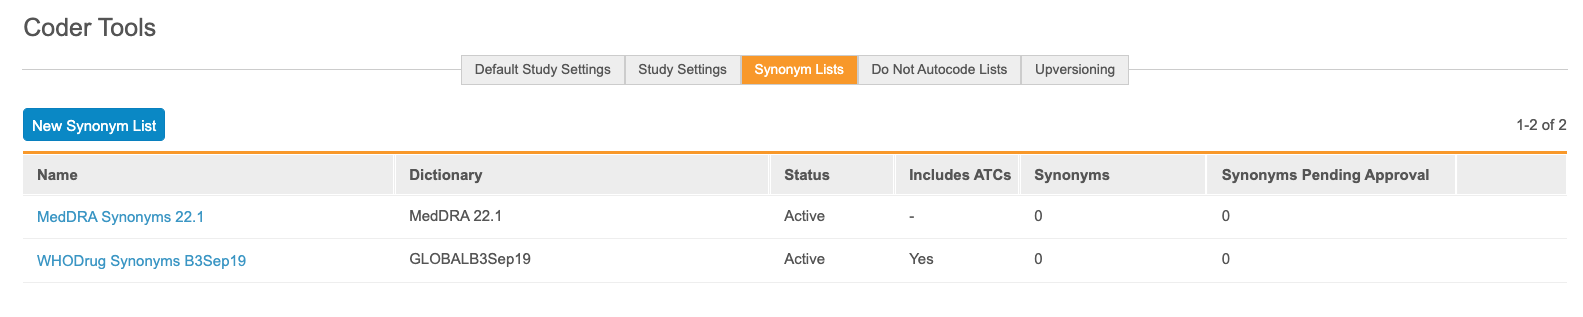 Synonym Lists tab